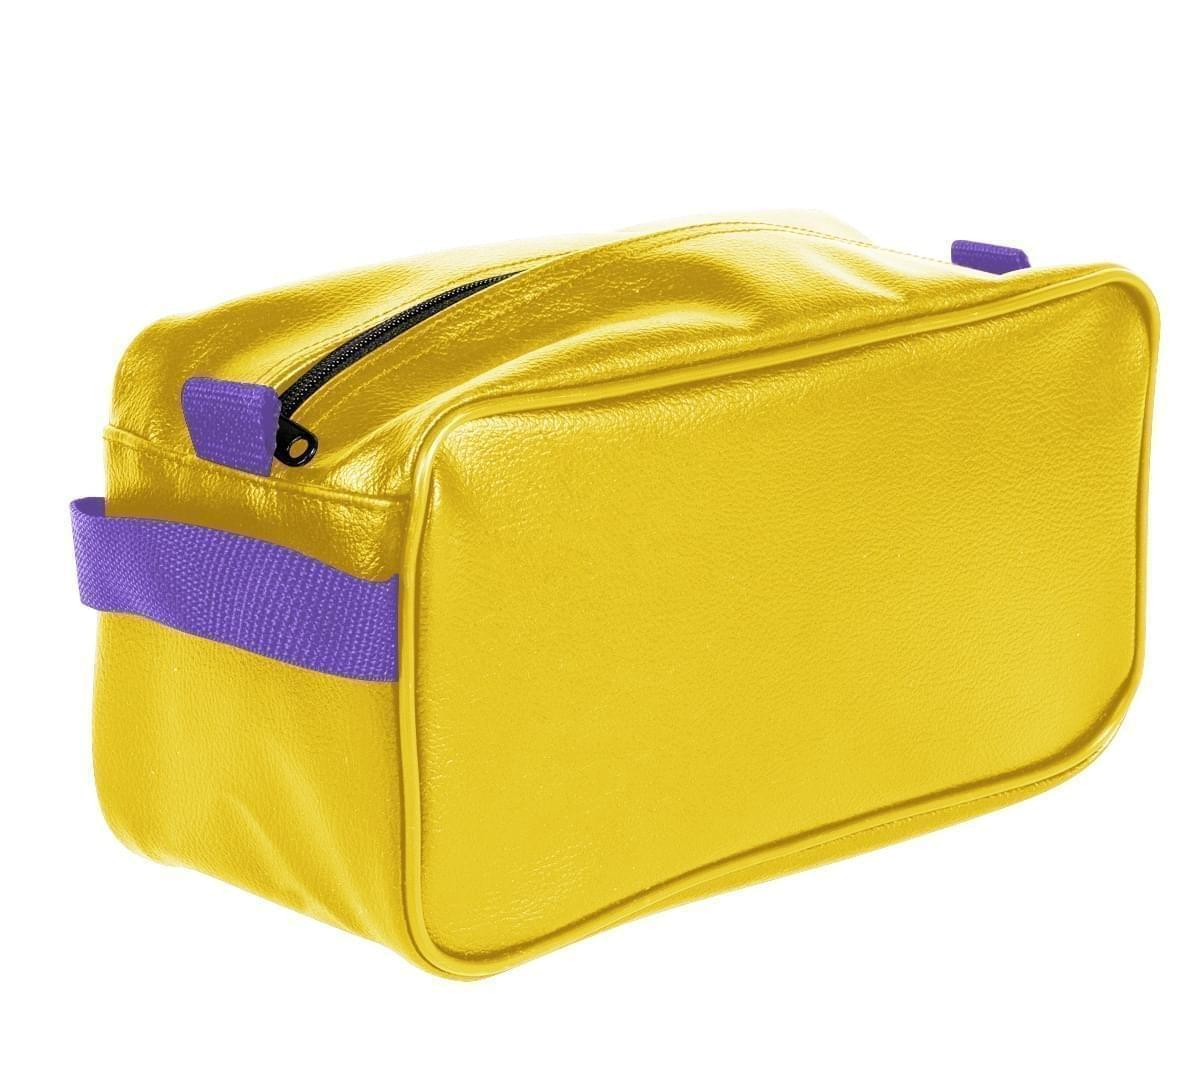 USA Made Cosmetic & Toiletry Cases, Gold-Purple, 3000996-A41